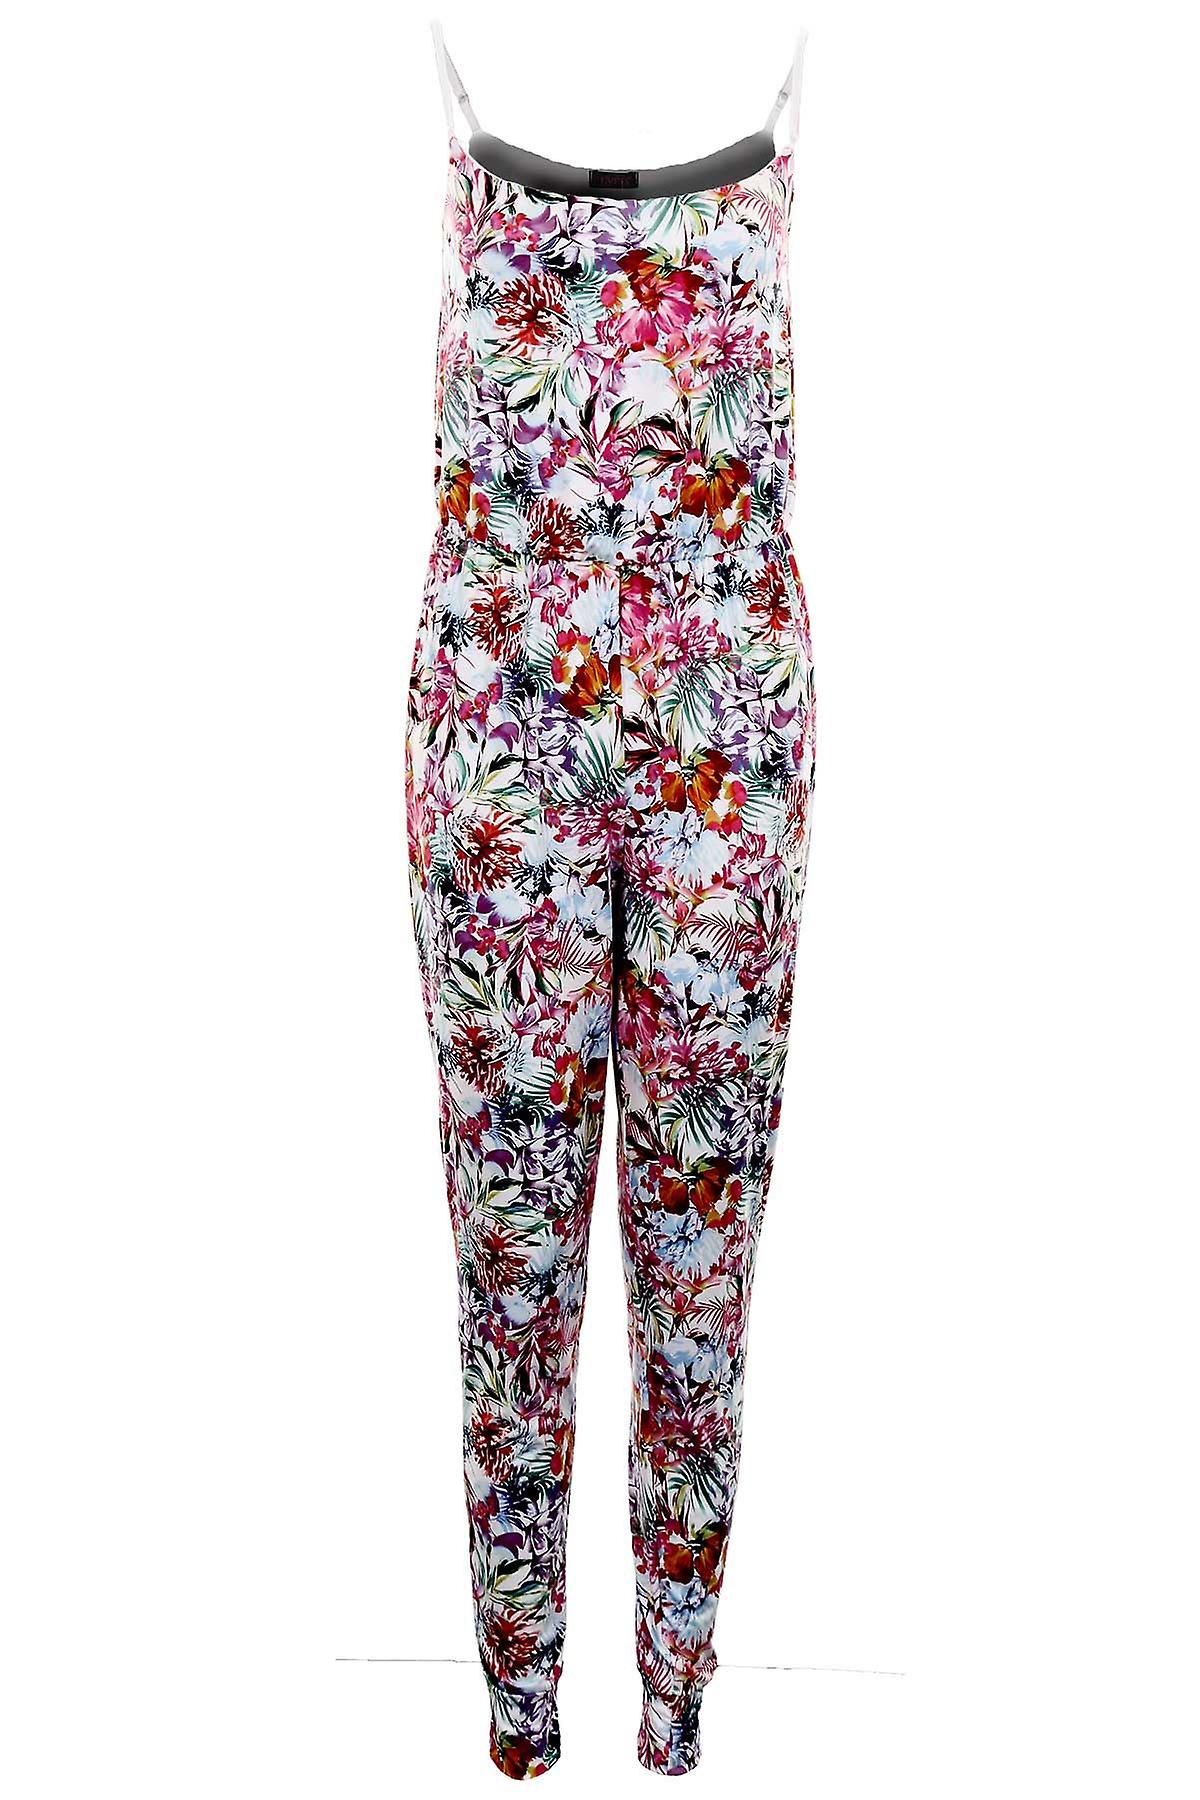 Ladies Adjustable Strap Multi Colour Floral Stretch All in one Women's Jumpsuit